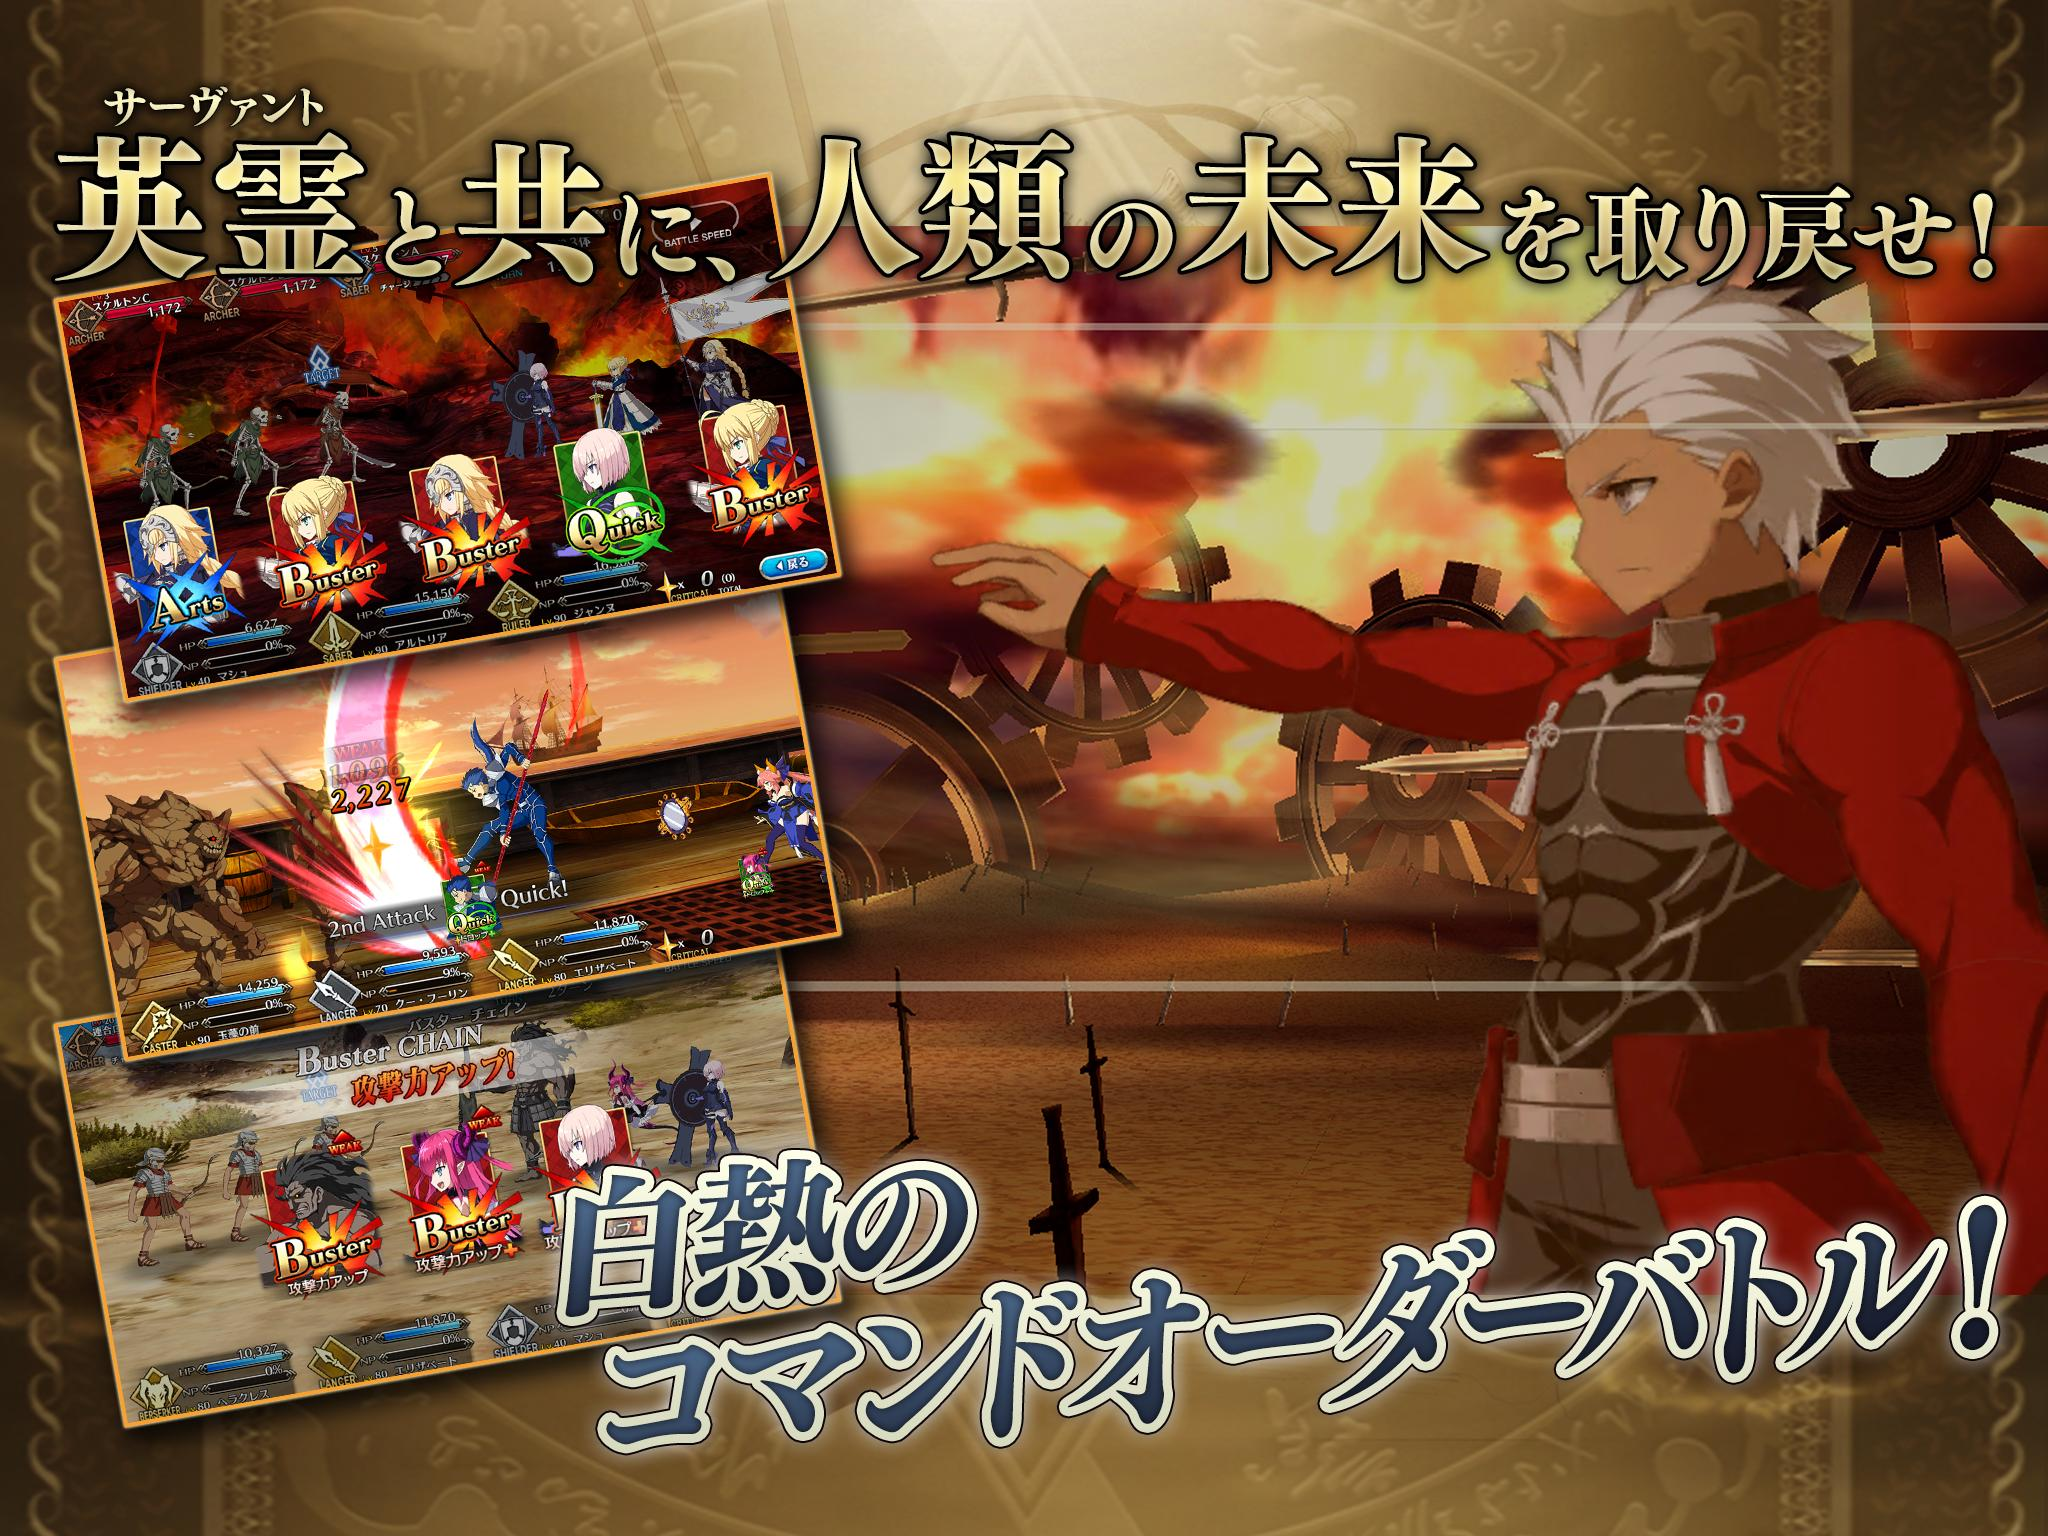 Fate/Grand Order for Android - APK Download